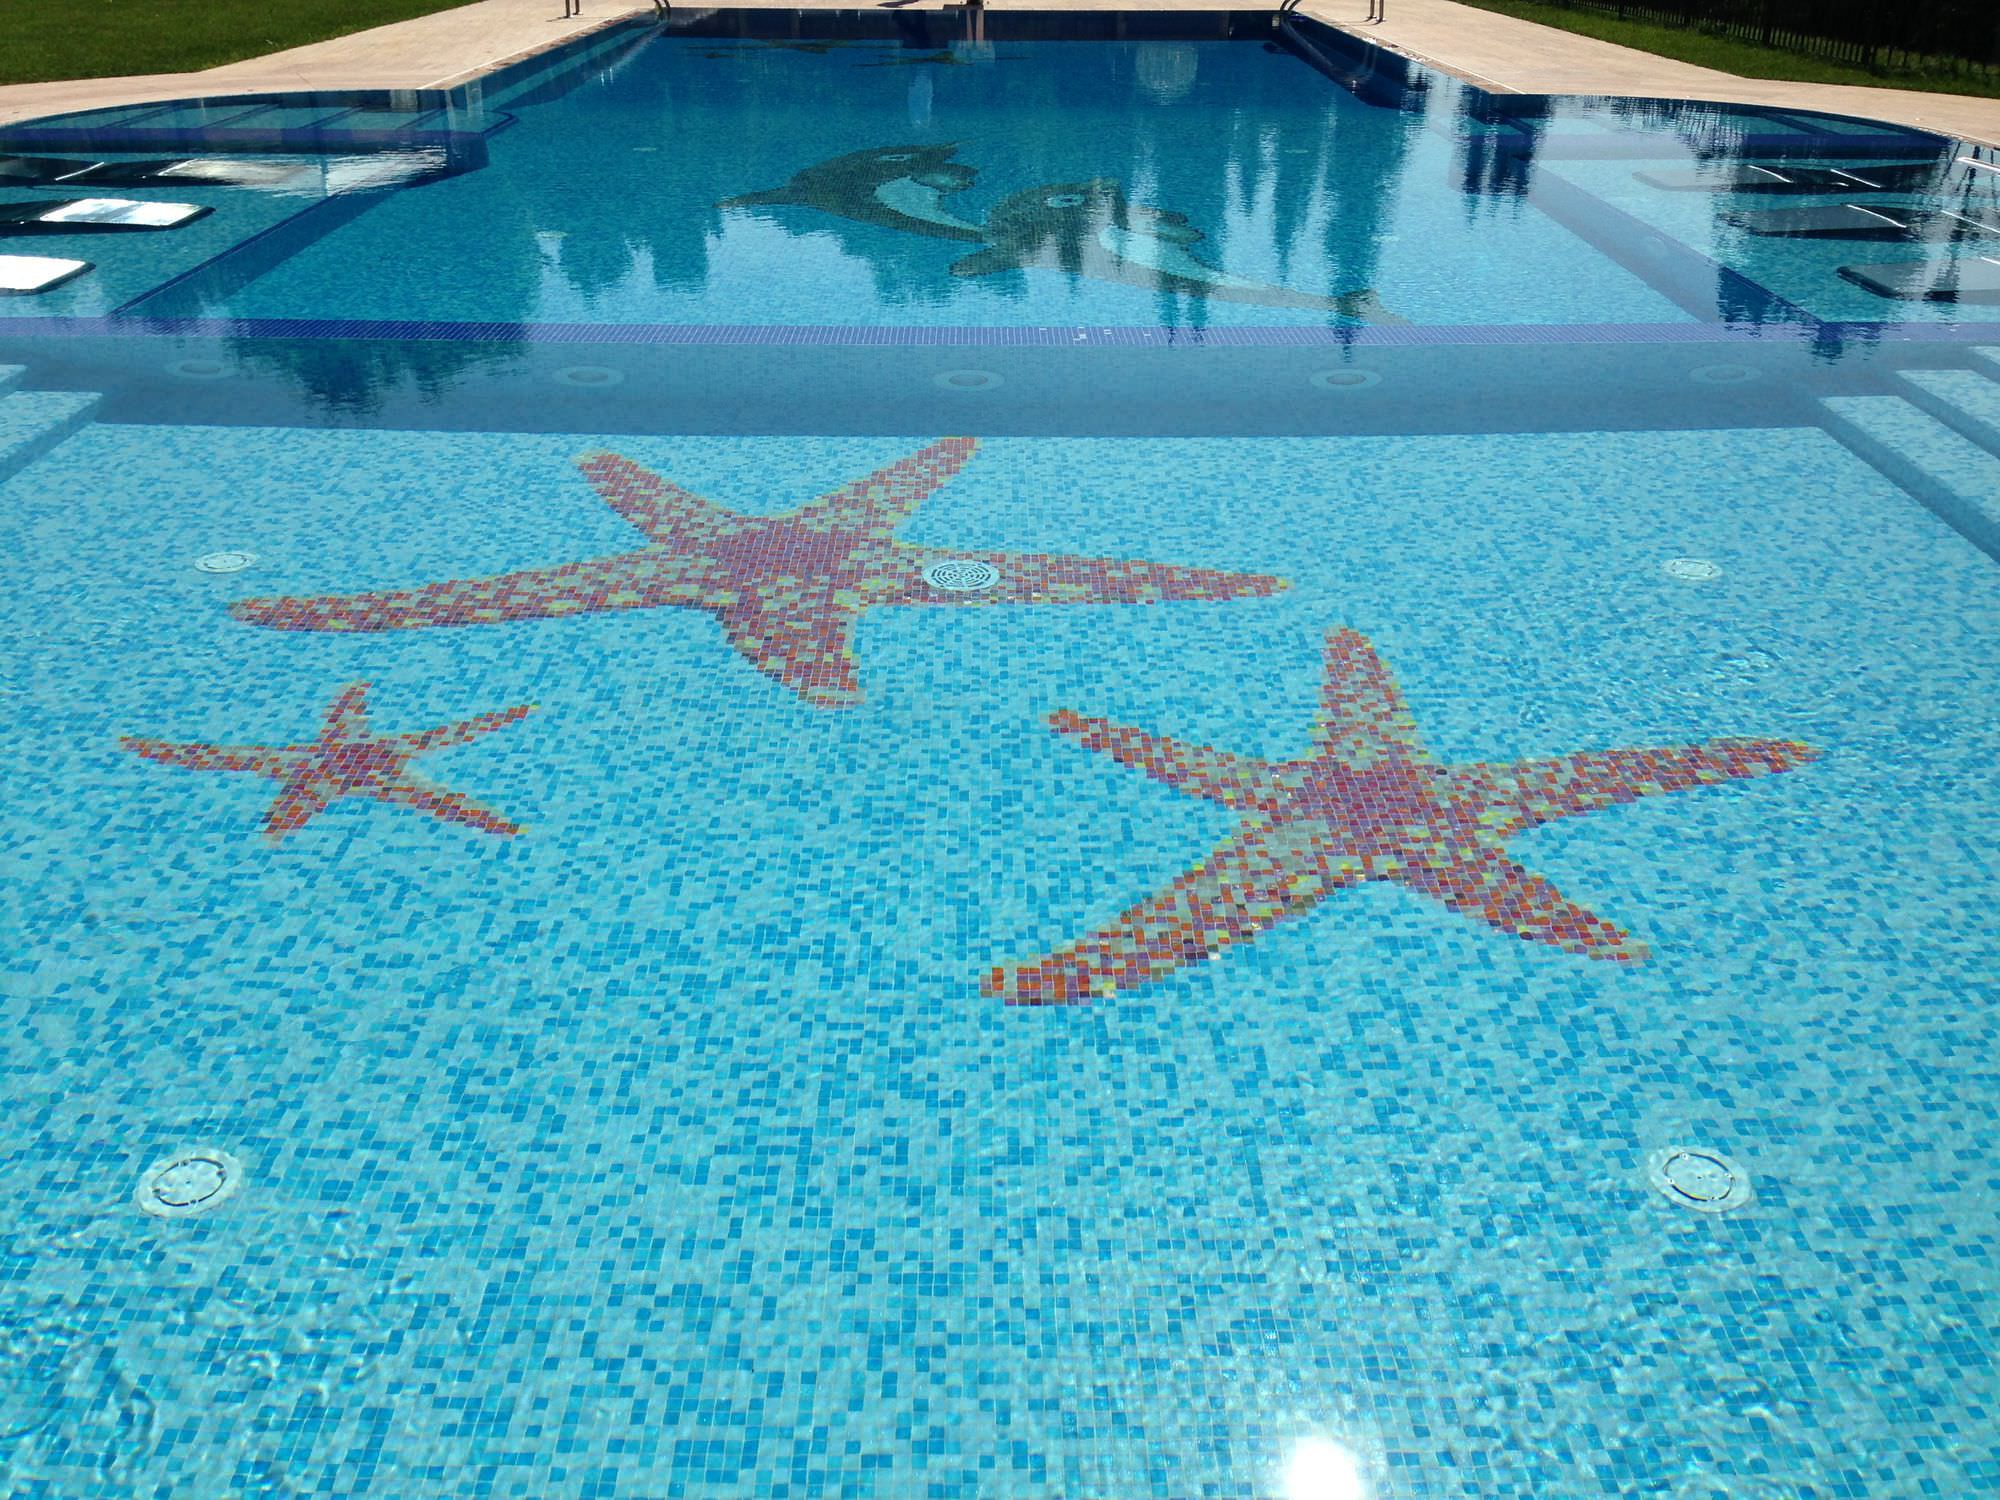 Outdoor mosaic tile / pool / floor / natural stone ...